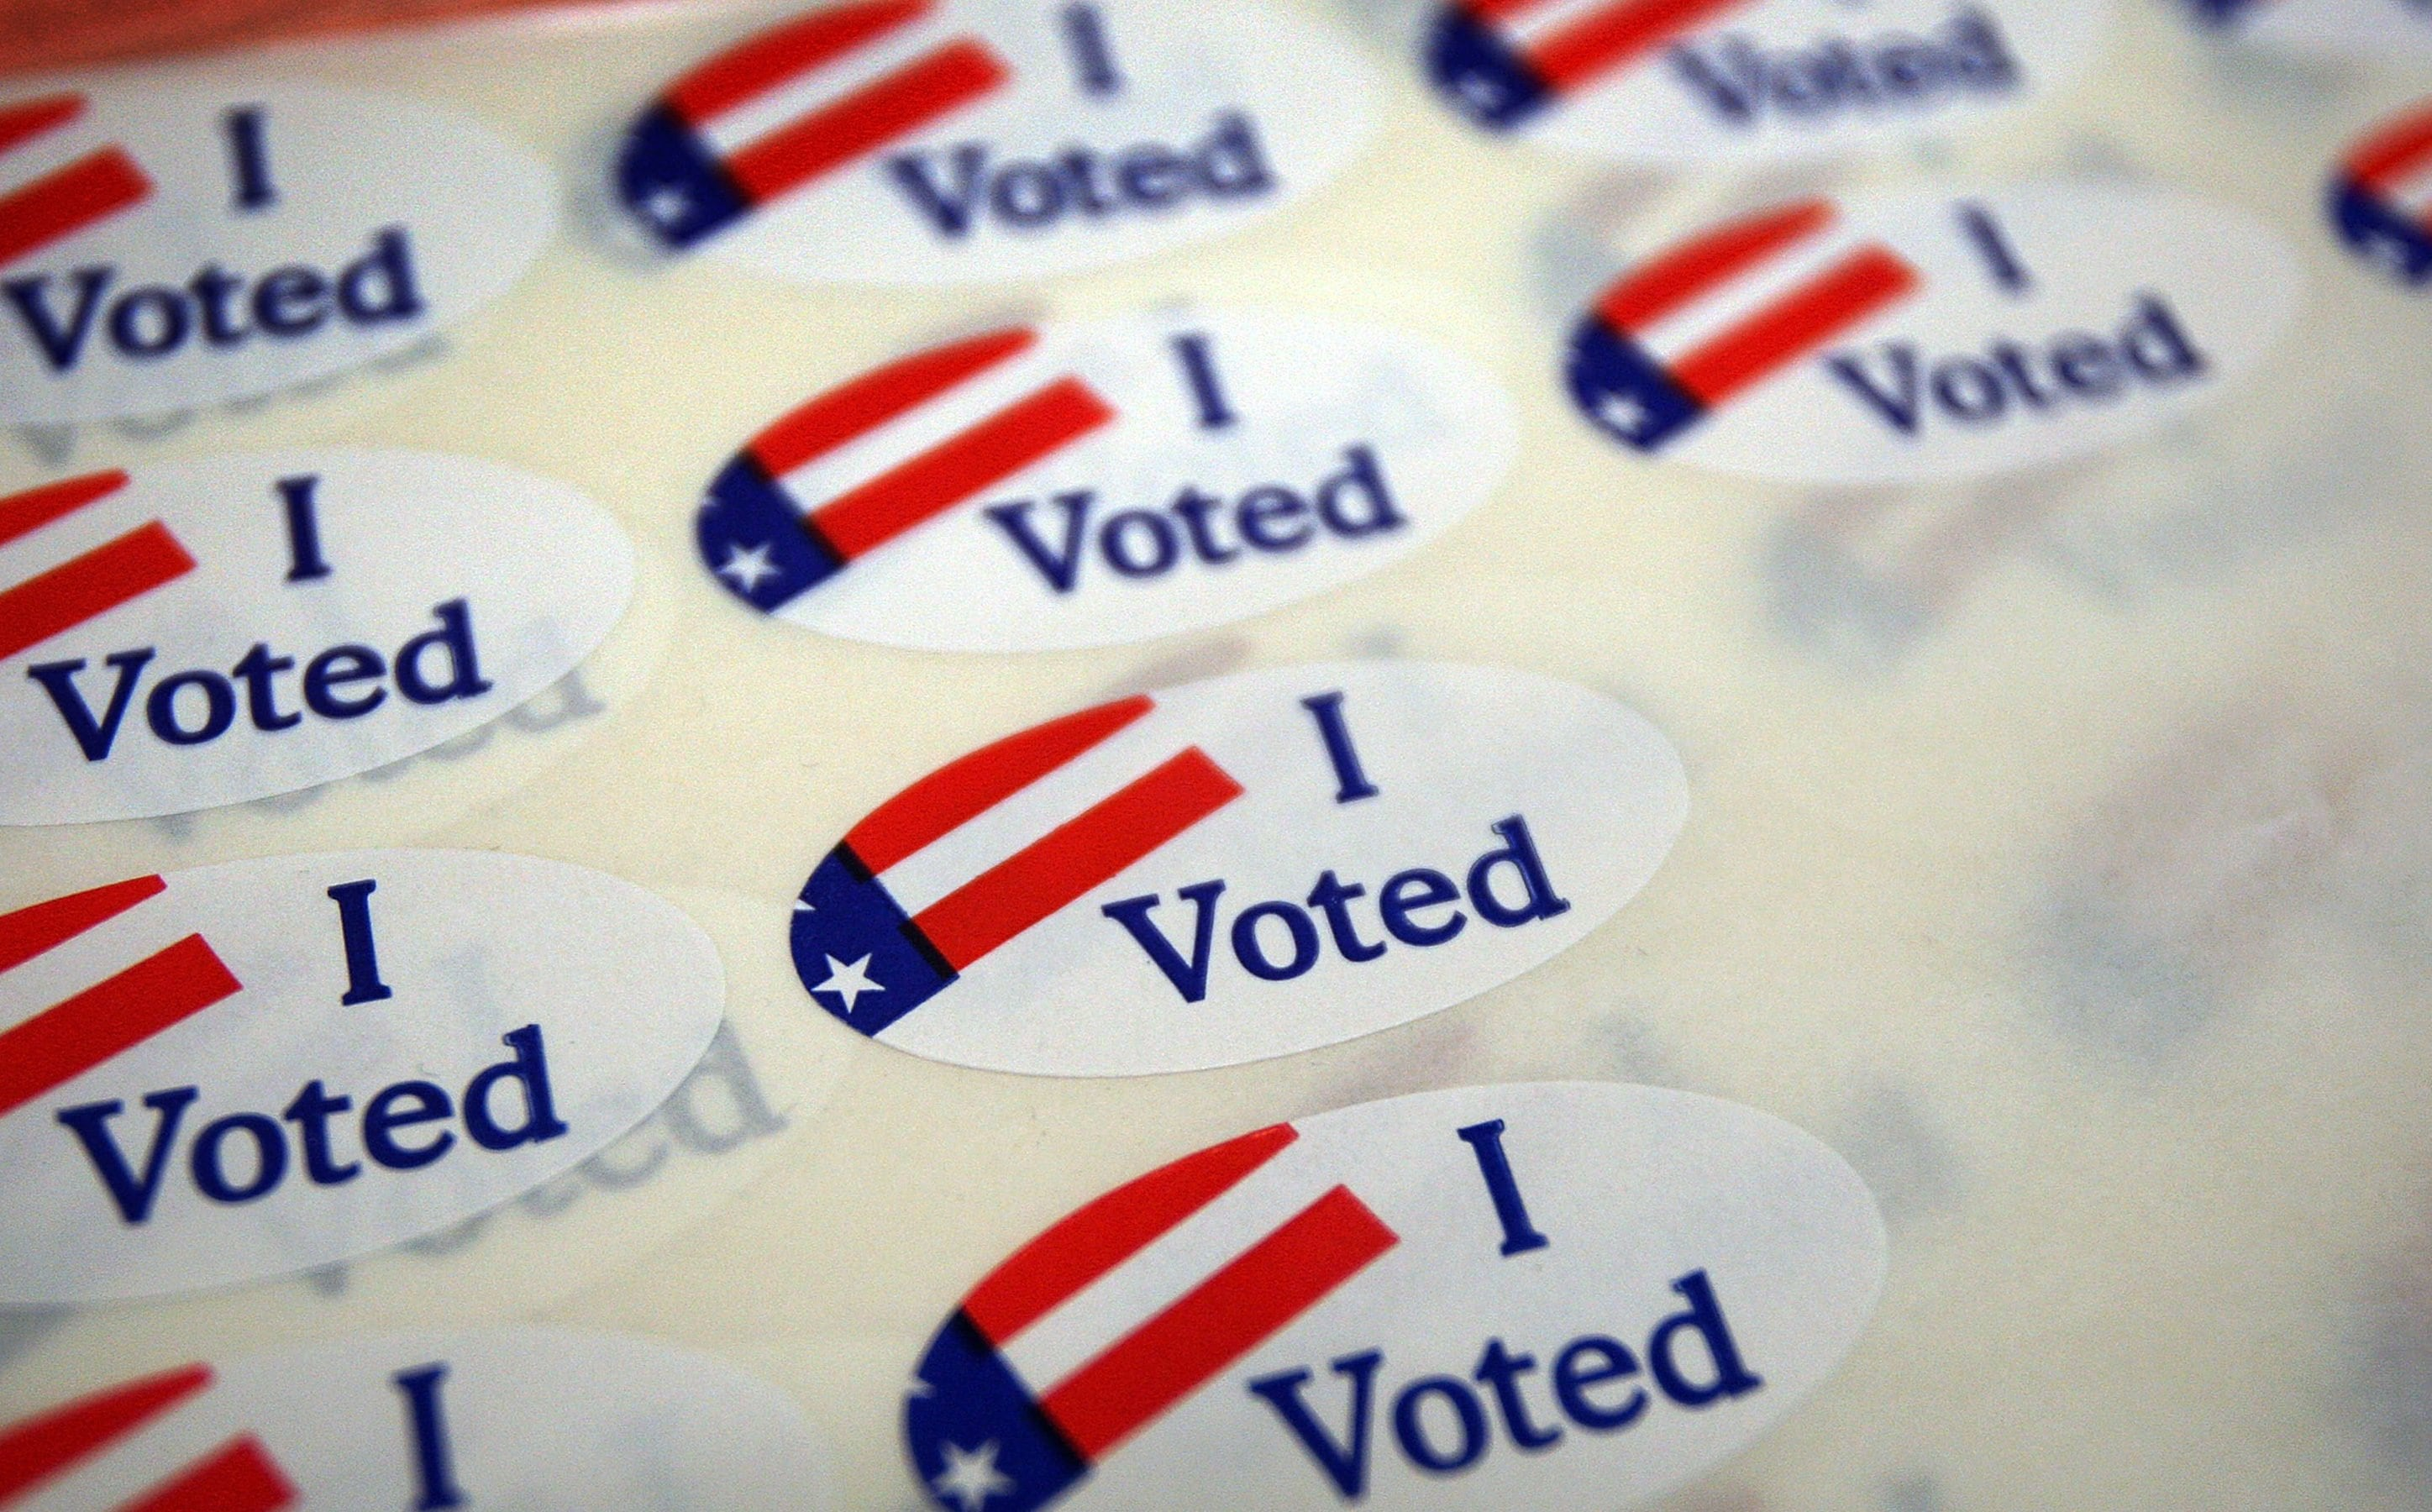 Judge: Florida's system for restoring felon voting rights unconstitutional